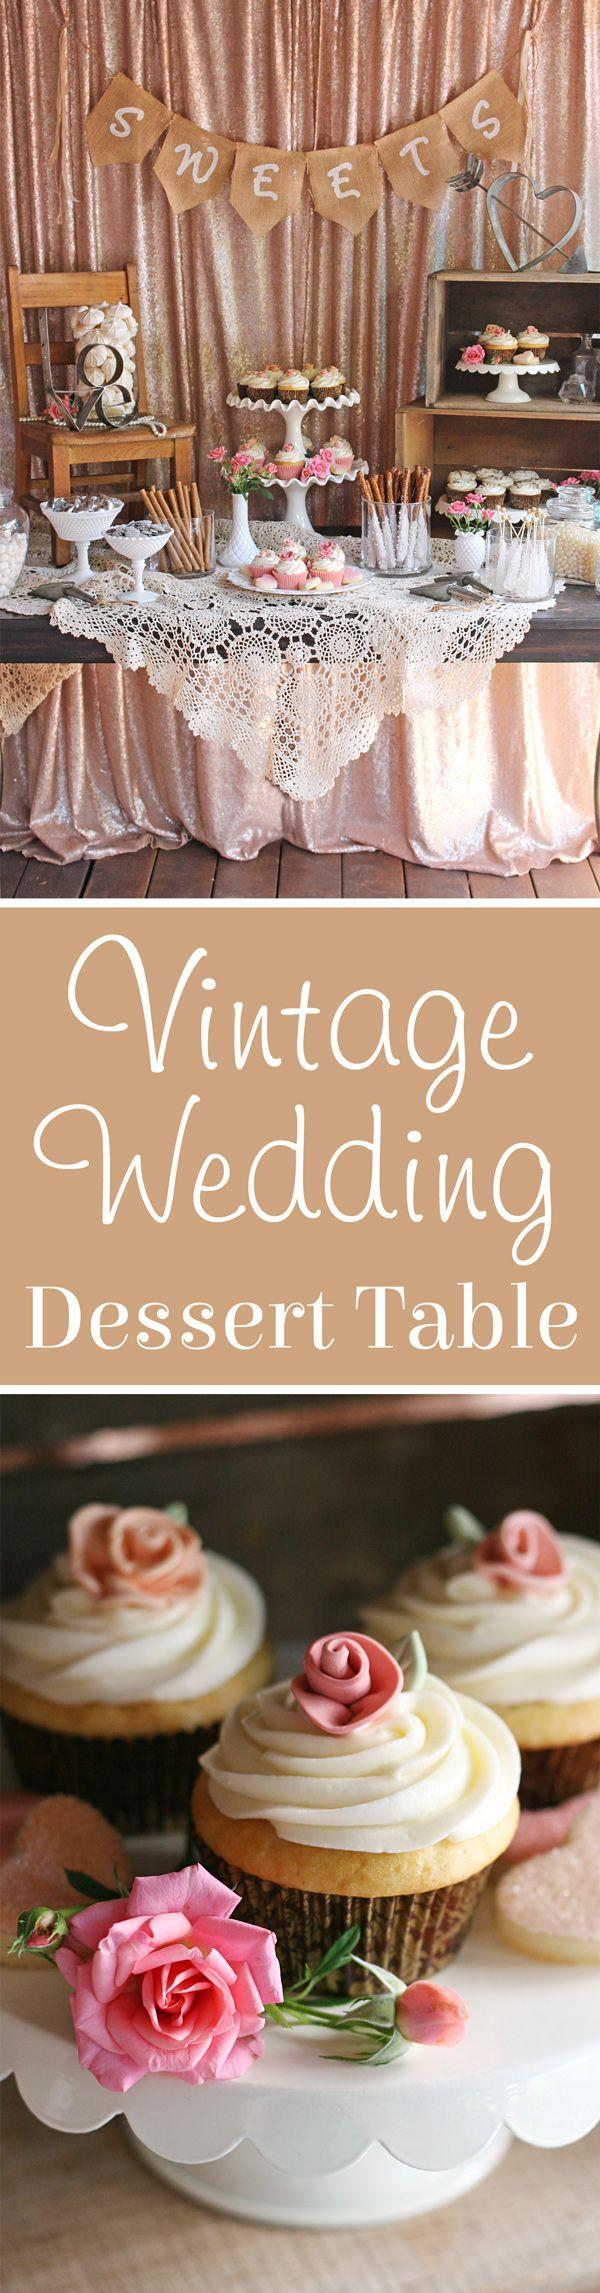 Wedding - Vintage Wedding Dessert Table